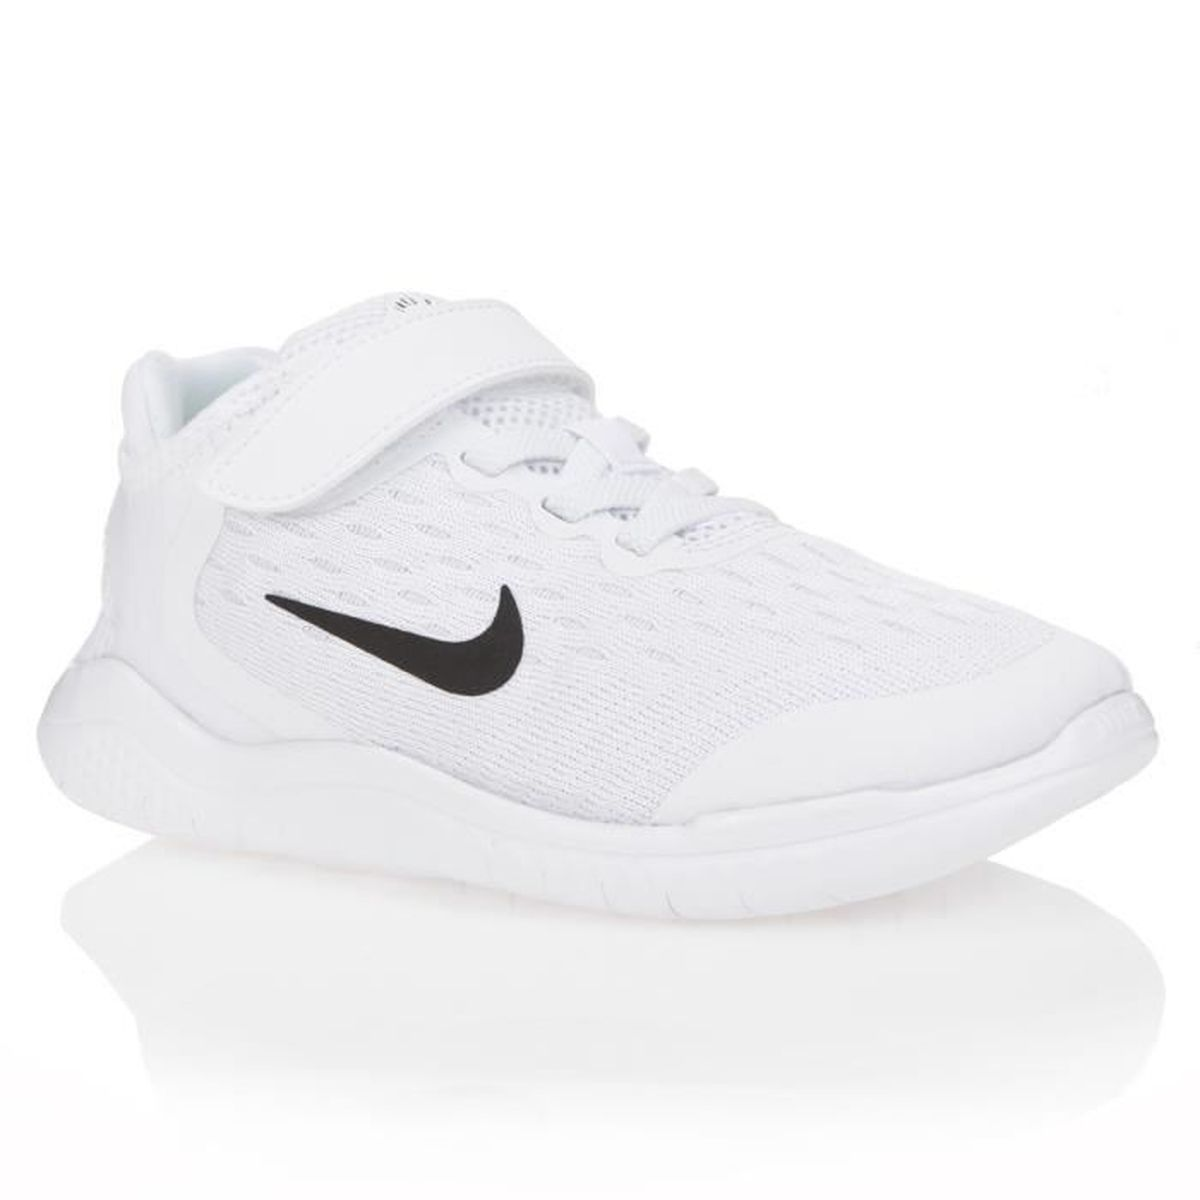 new product 79a2b 01095 Basket run free - Achat   Vente pas cher